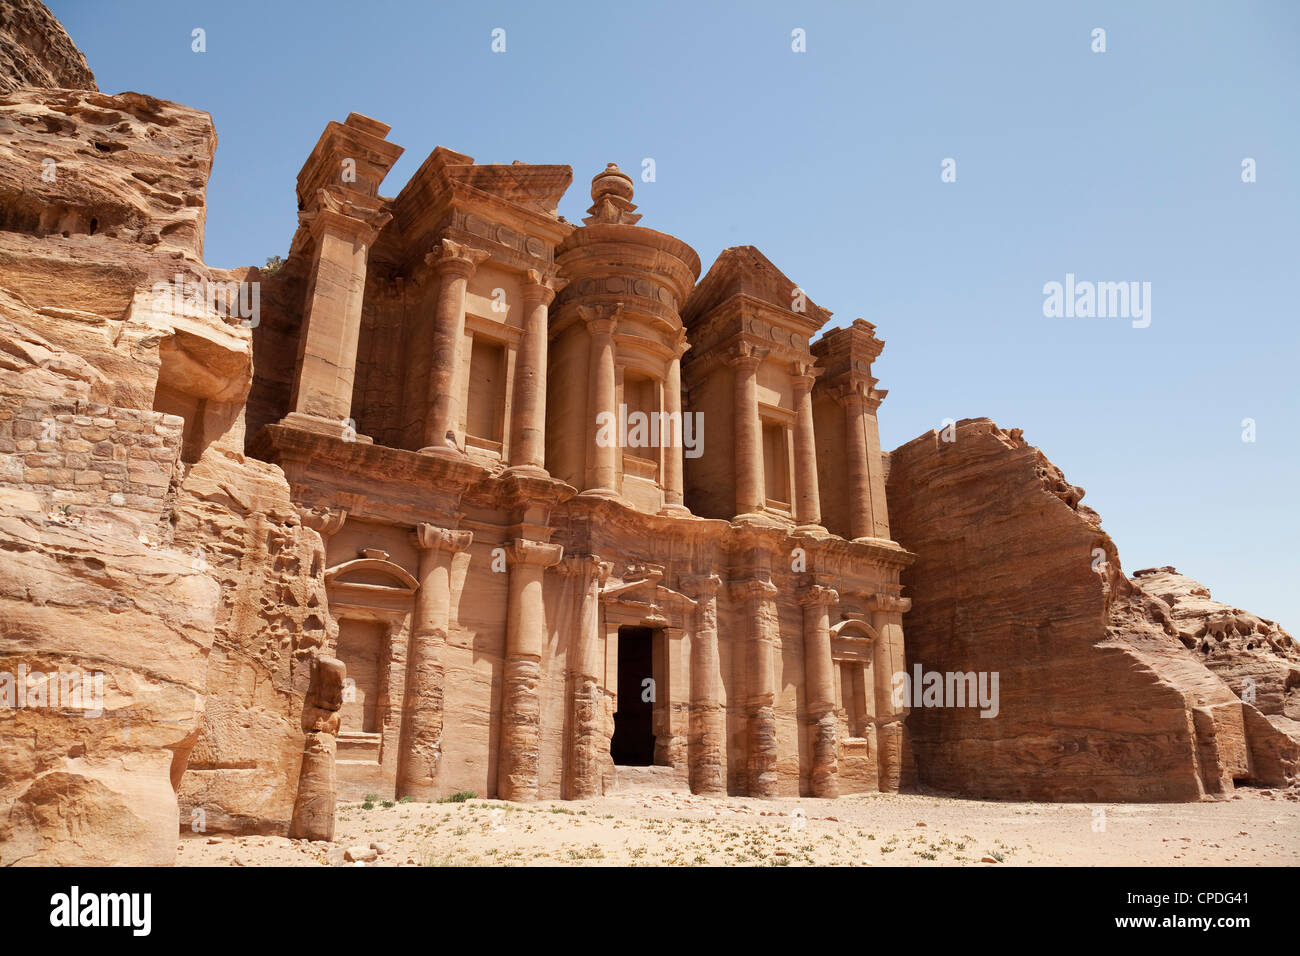 The facade of the Monastery carved into the red rock at Petra, UNESCO World Heritage Site, Jordan, Middle East - Stock Image